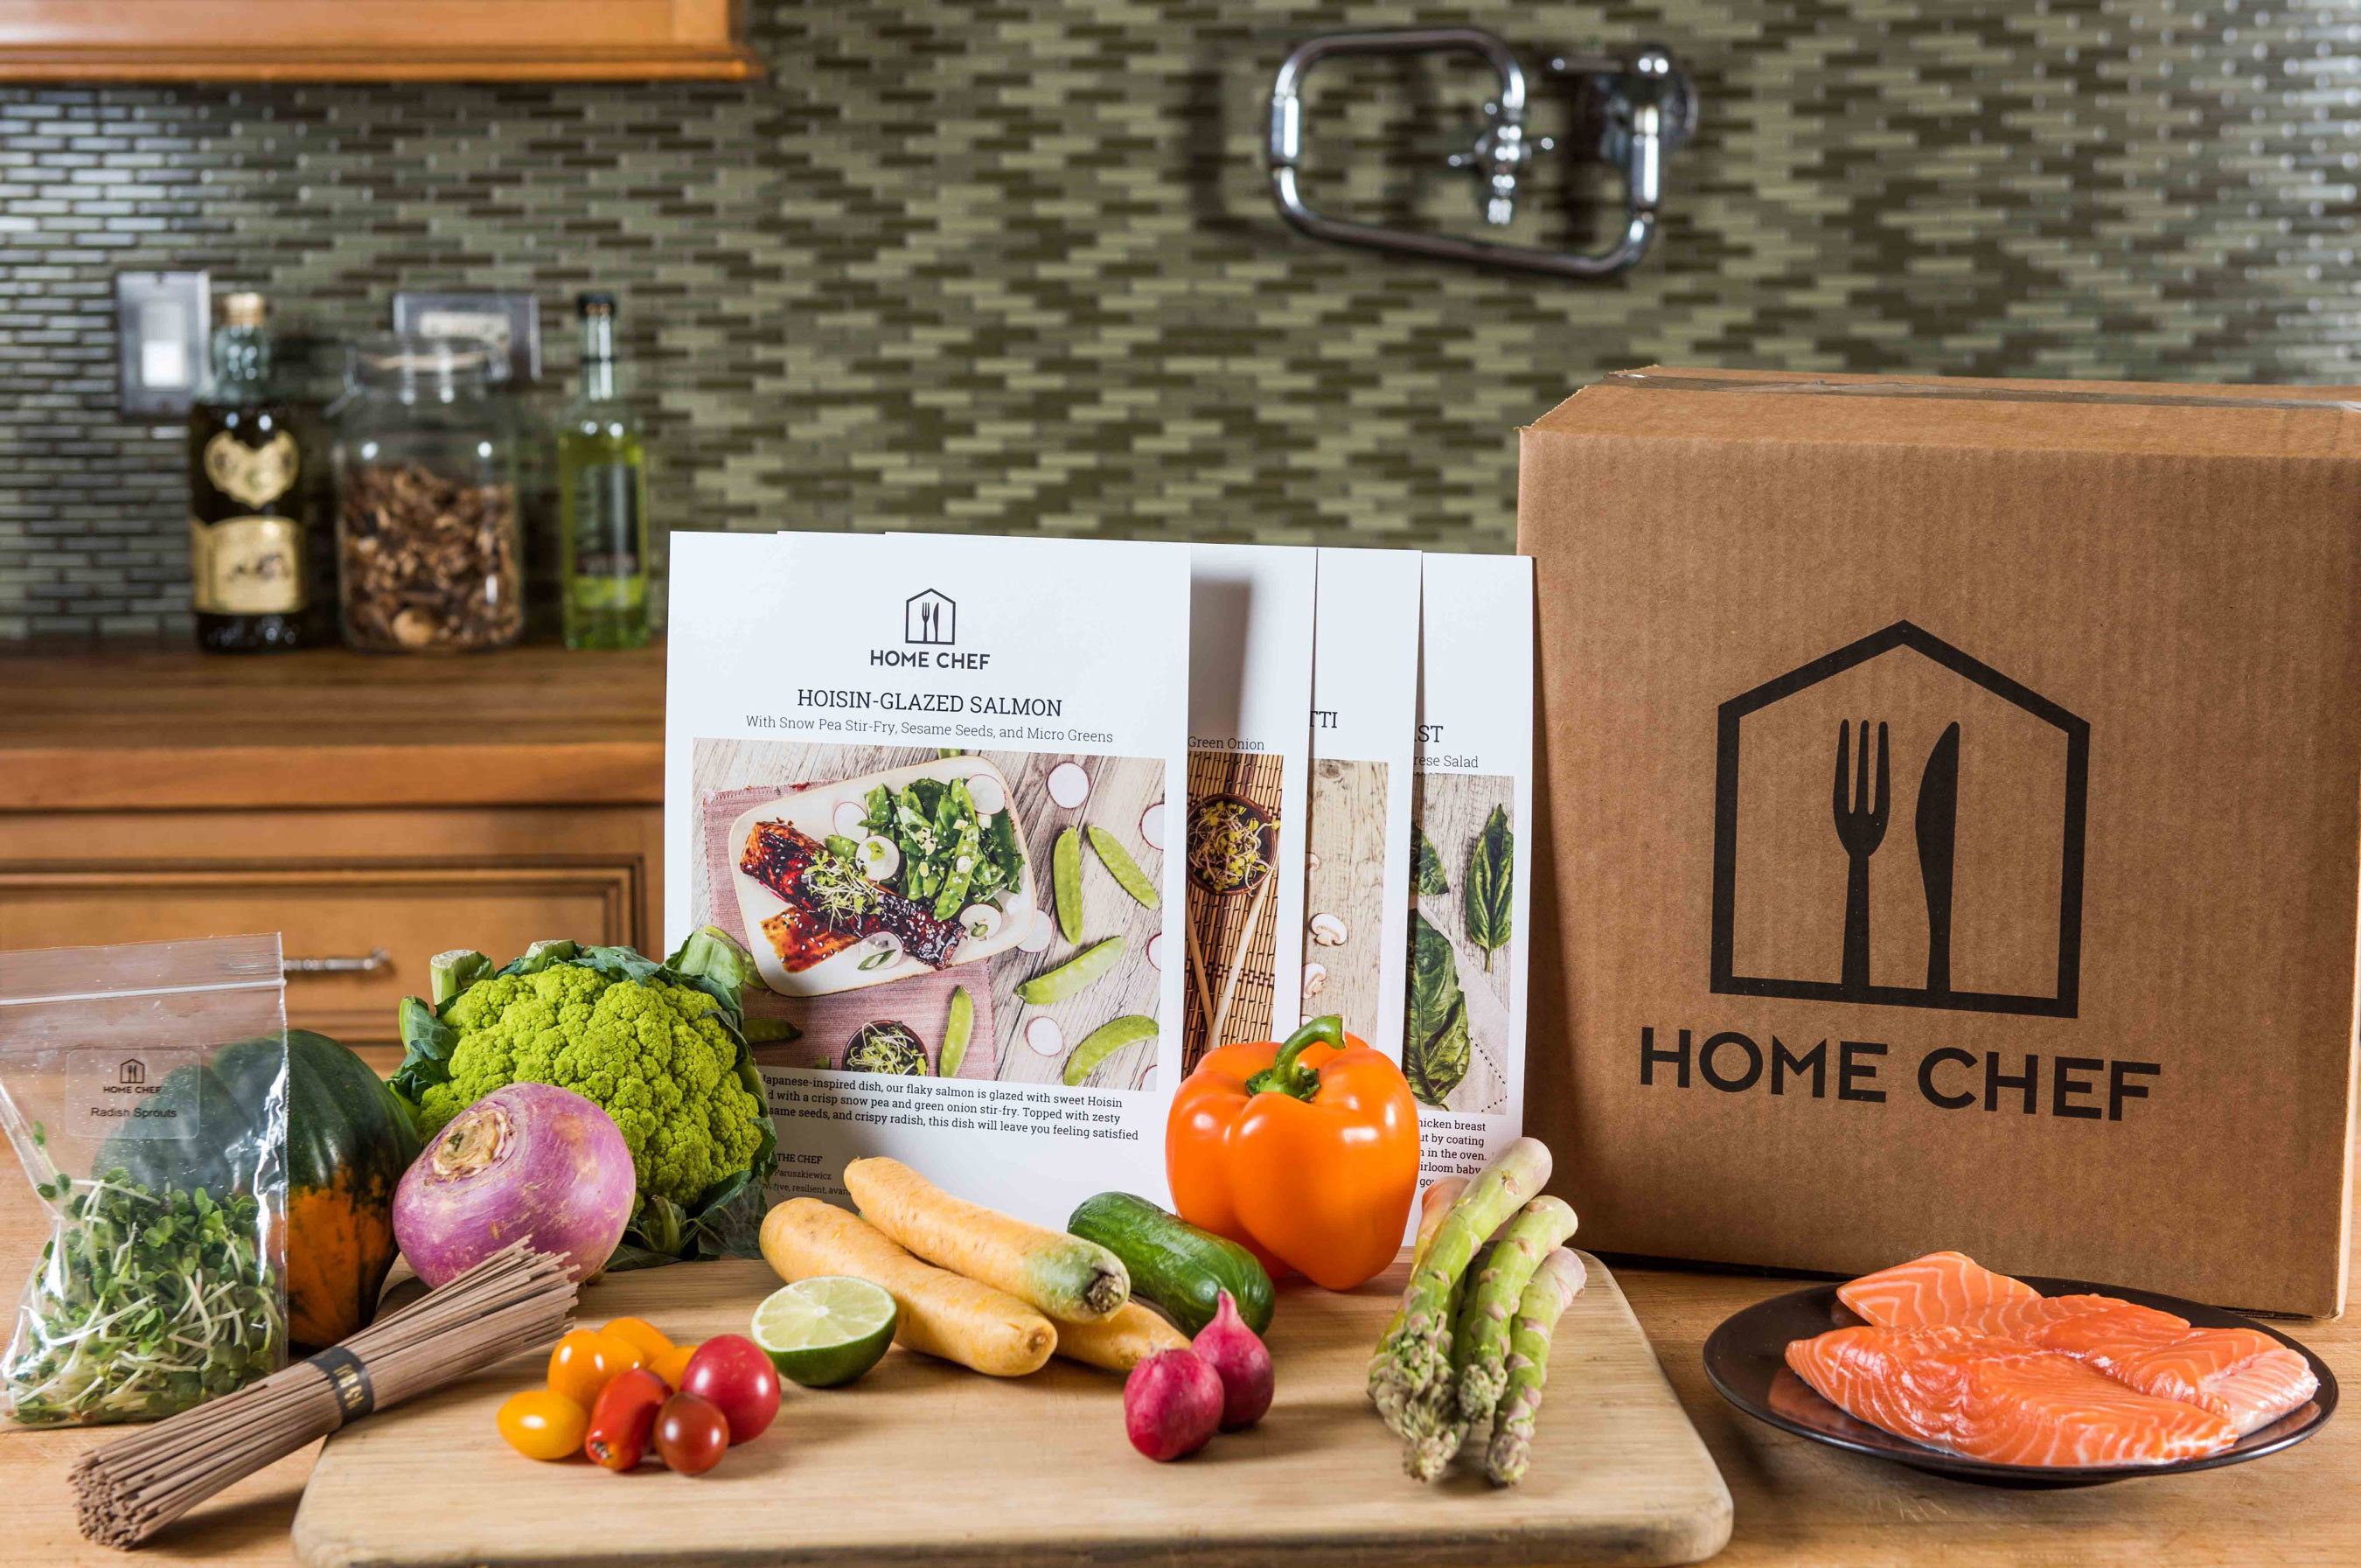 Home Chef, the Chicago-based meal delivery service, announces expansion to reach 90 percent of all Americans and dishes out fresh ingredients and recipes for home cooking